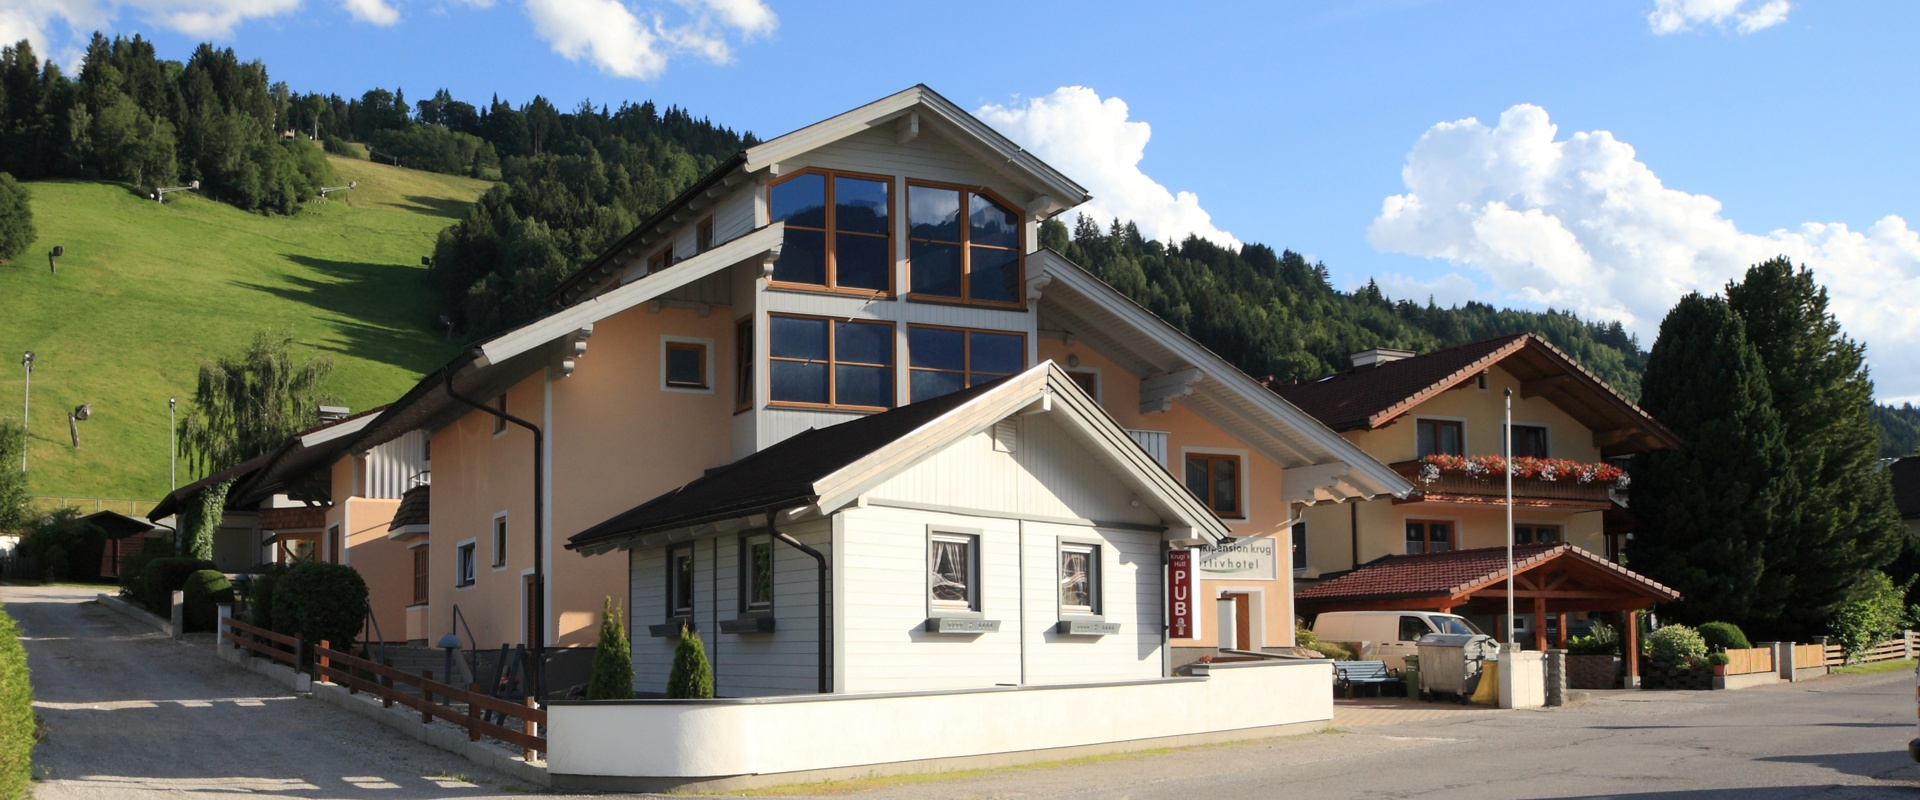 Golf- & Skipension Krug